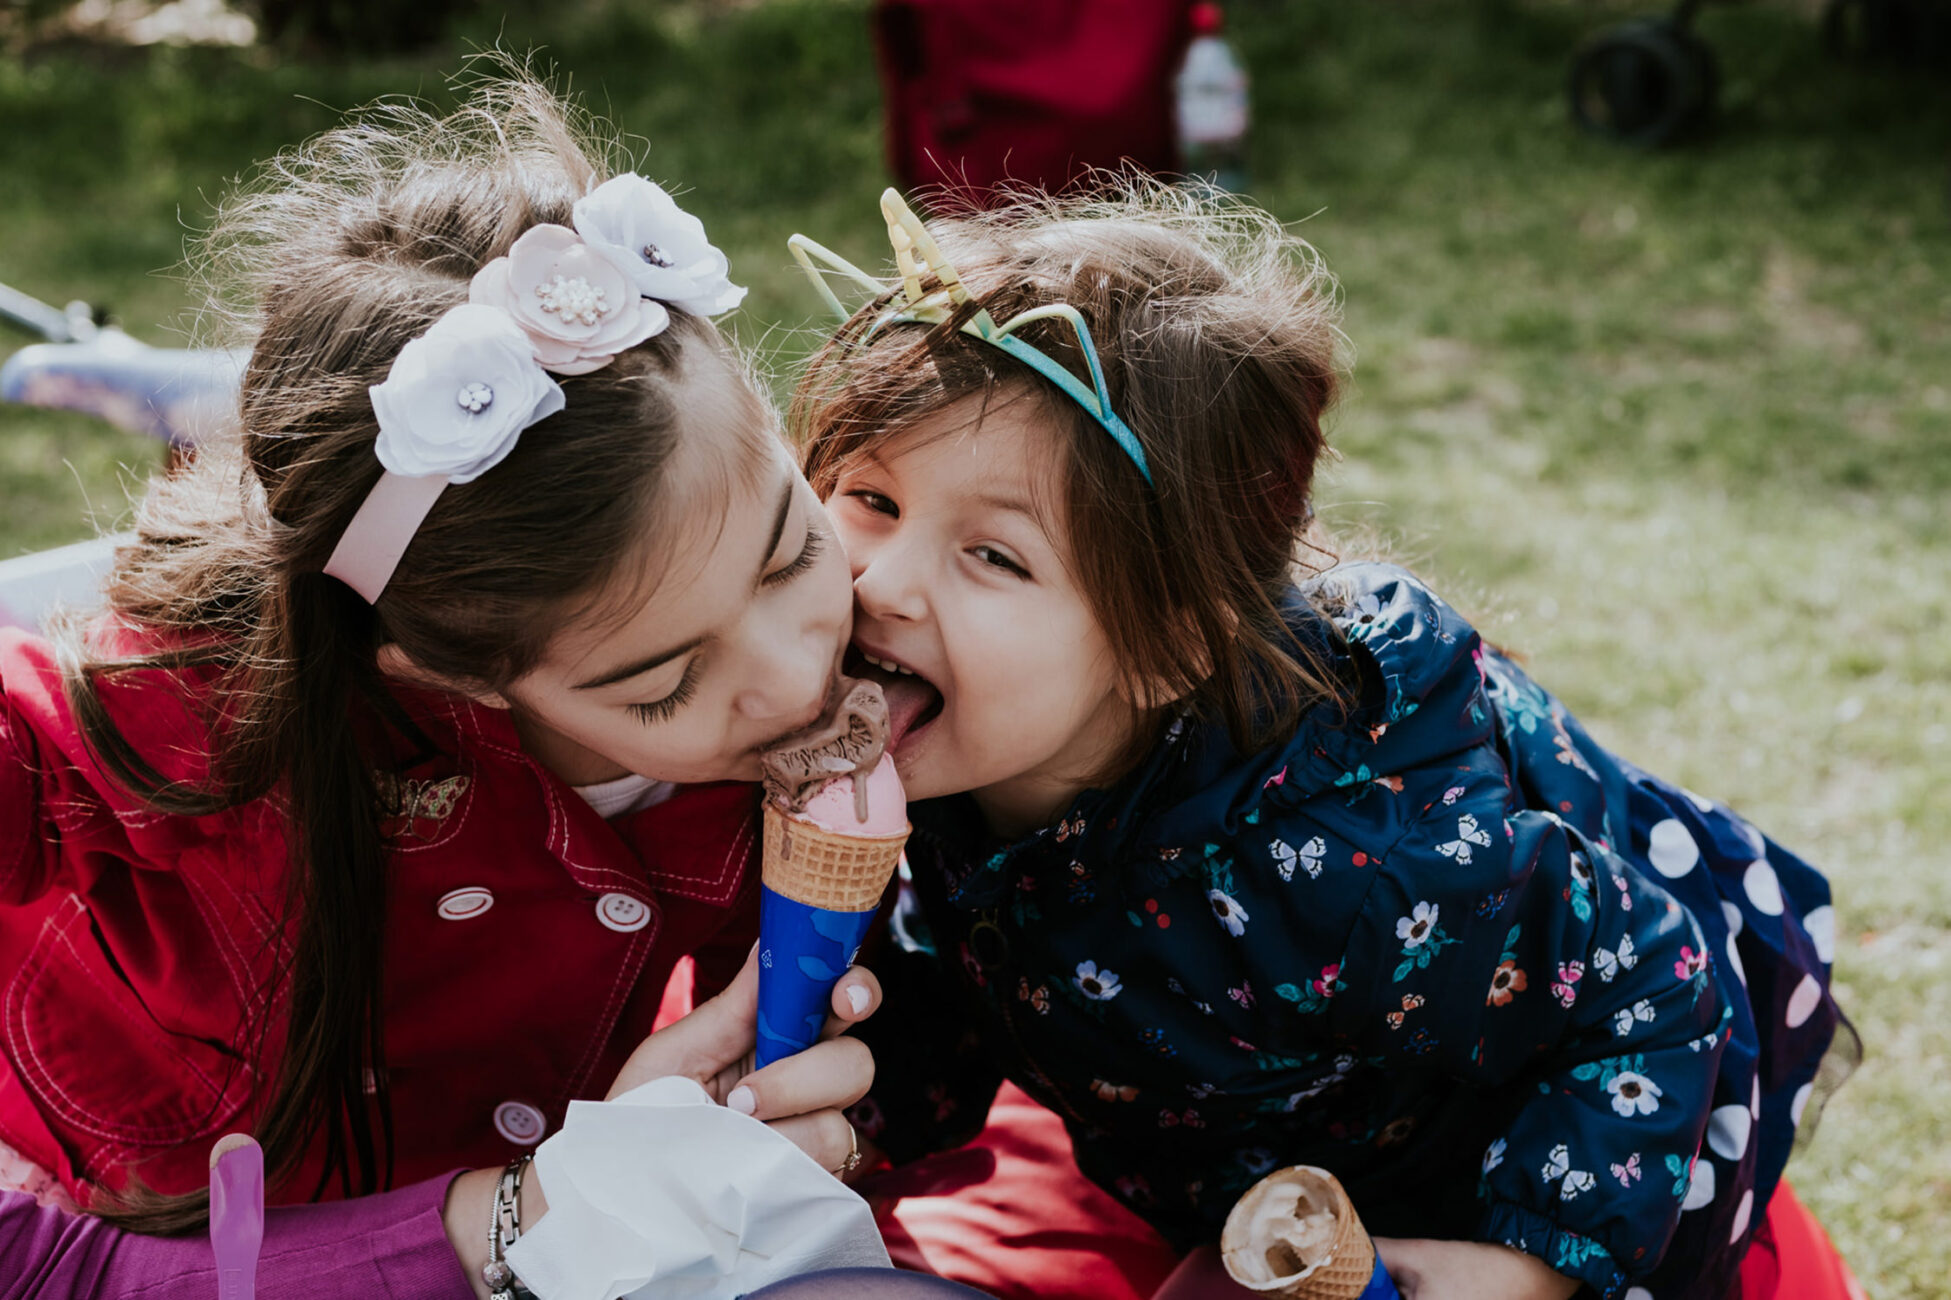 two little girls sharing an icecream during a family photo session